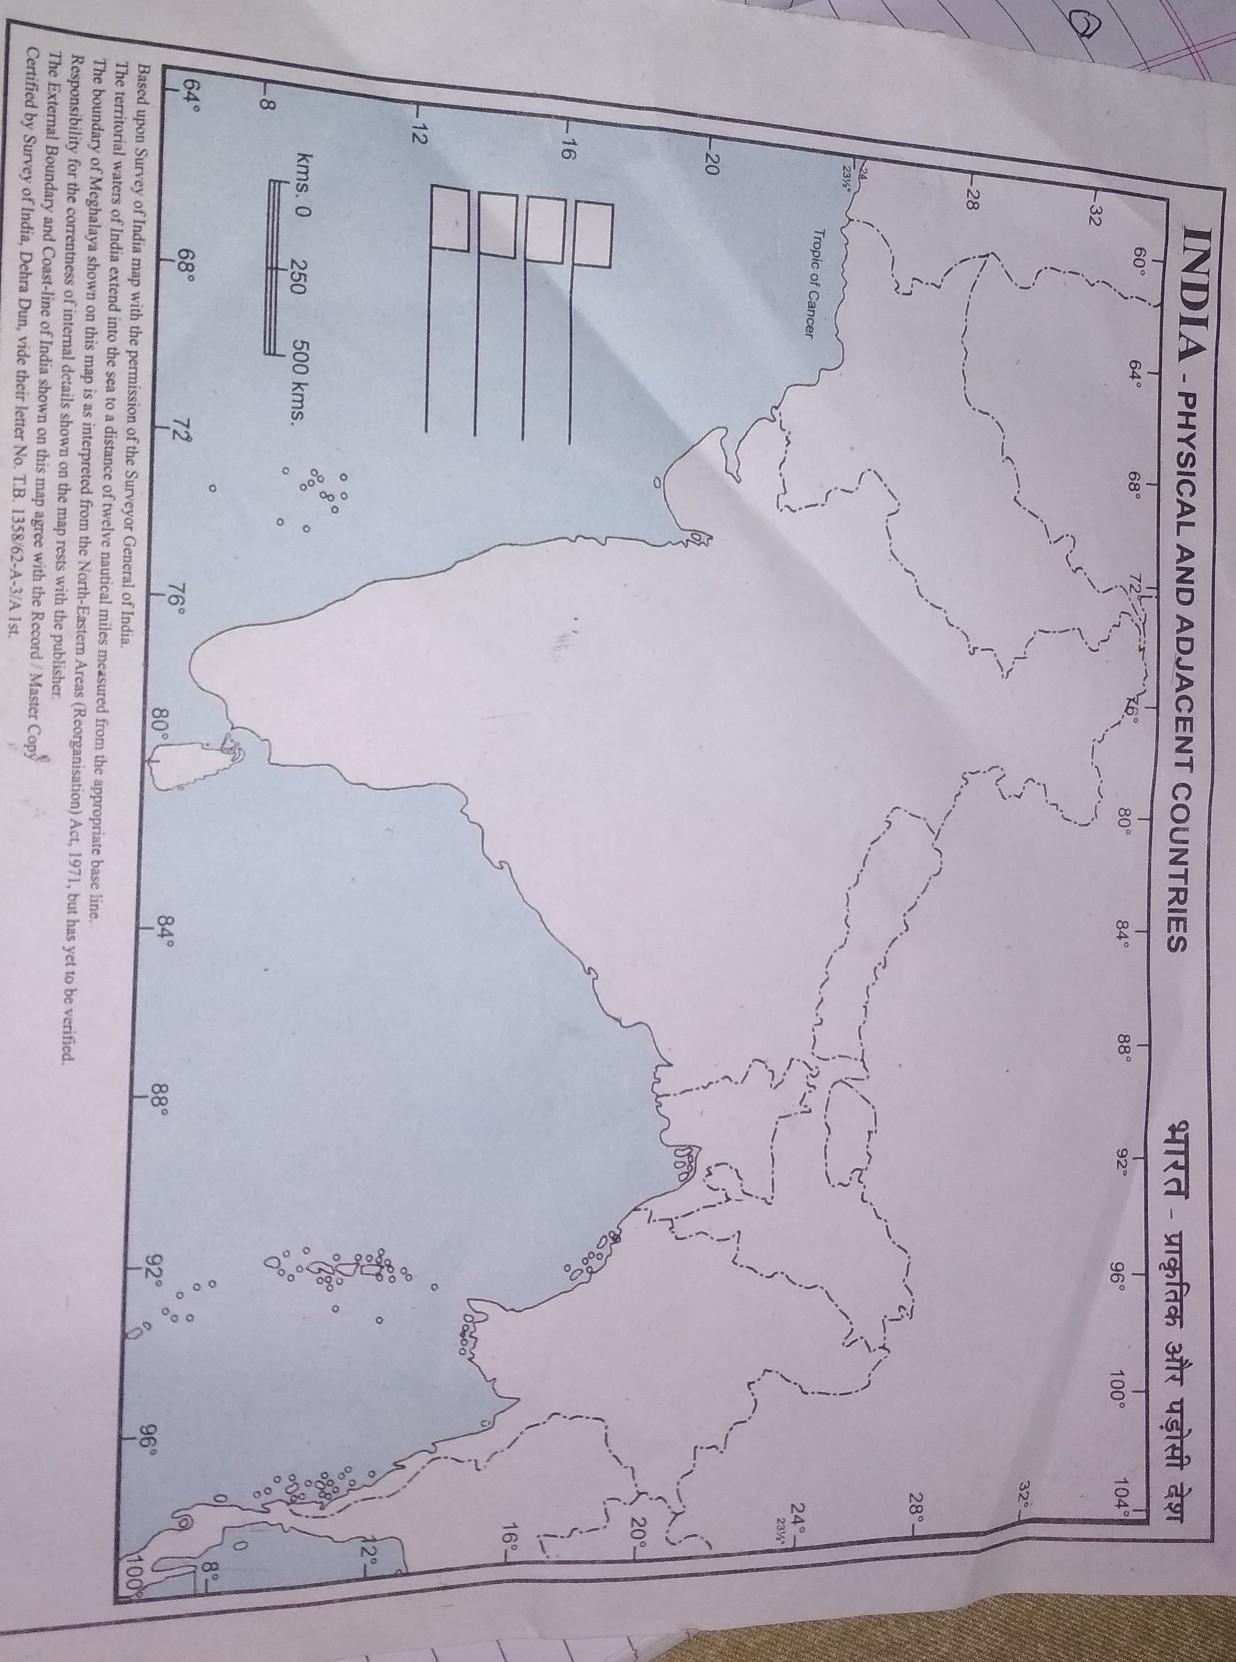 Show the Ganga Brahmaputra river basin on the outline map of ...